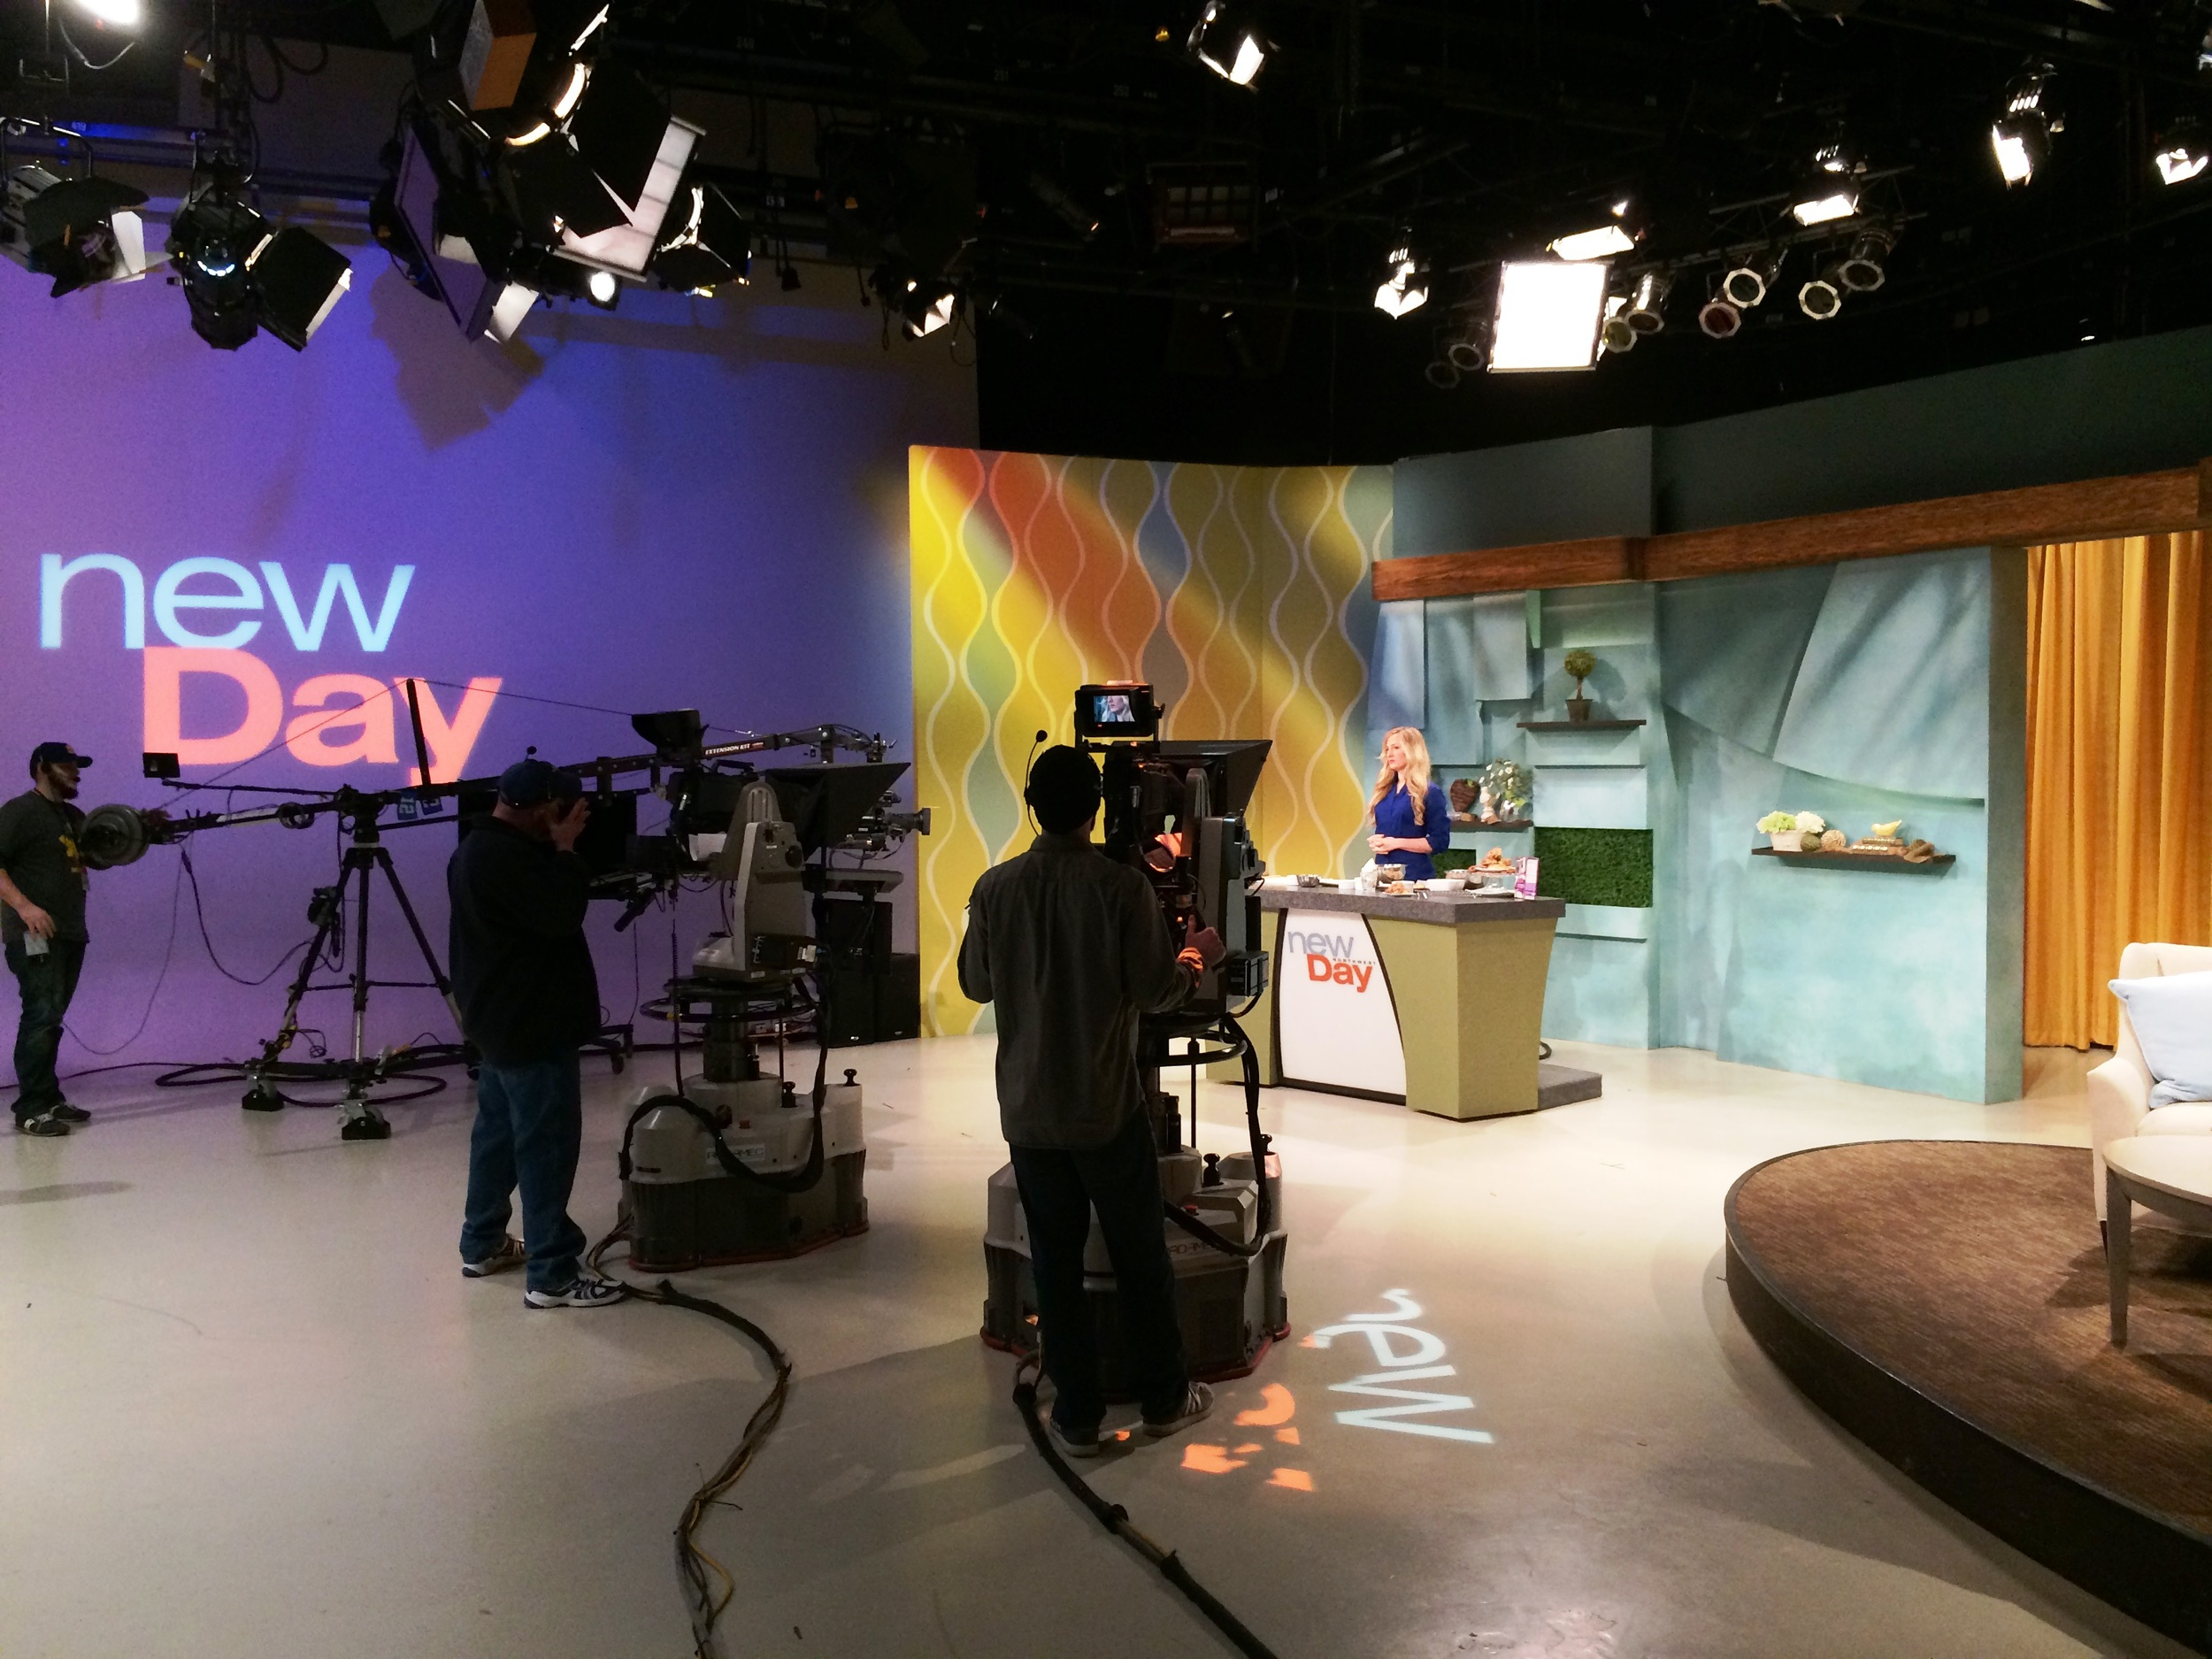 Here's what the studio looks like when you're actually there, in the audience.